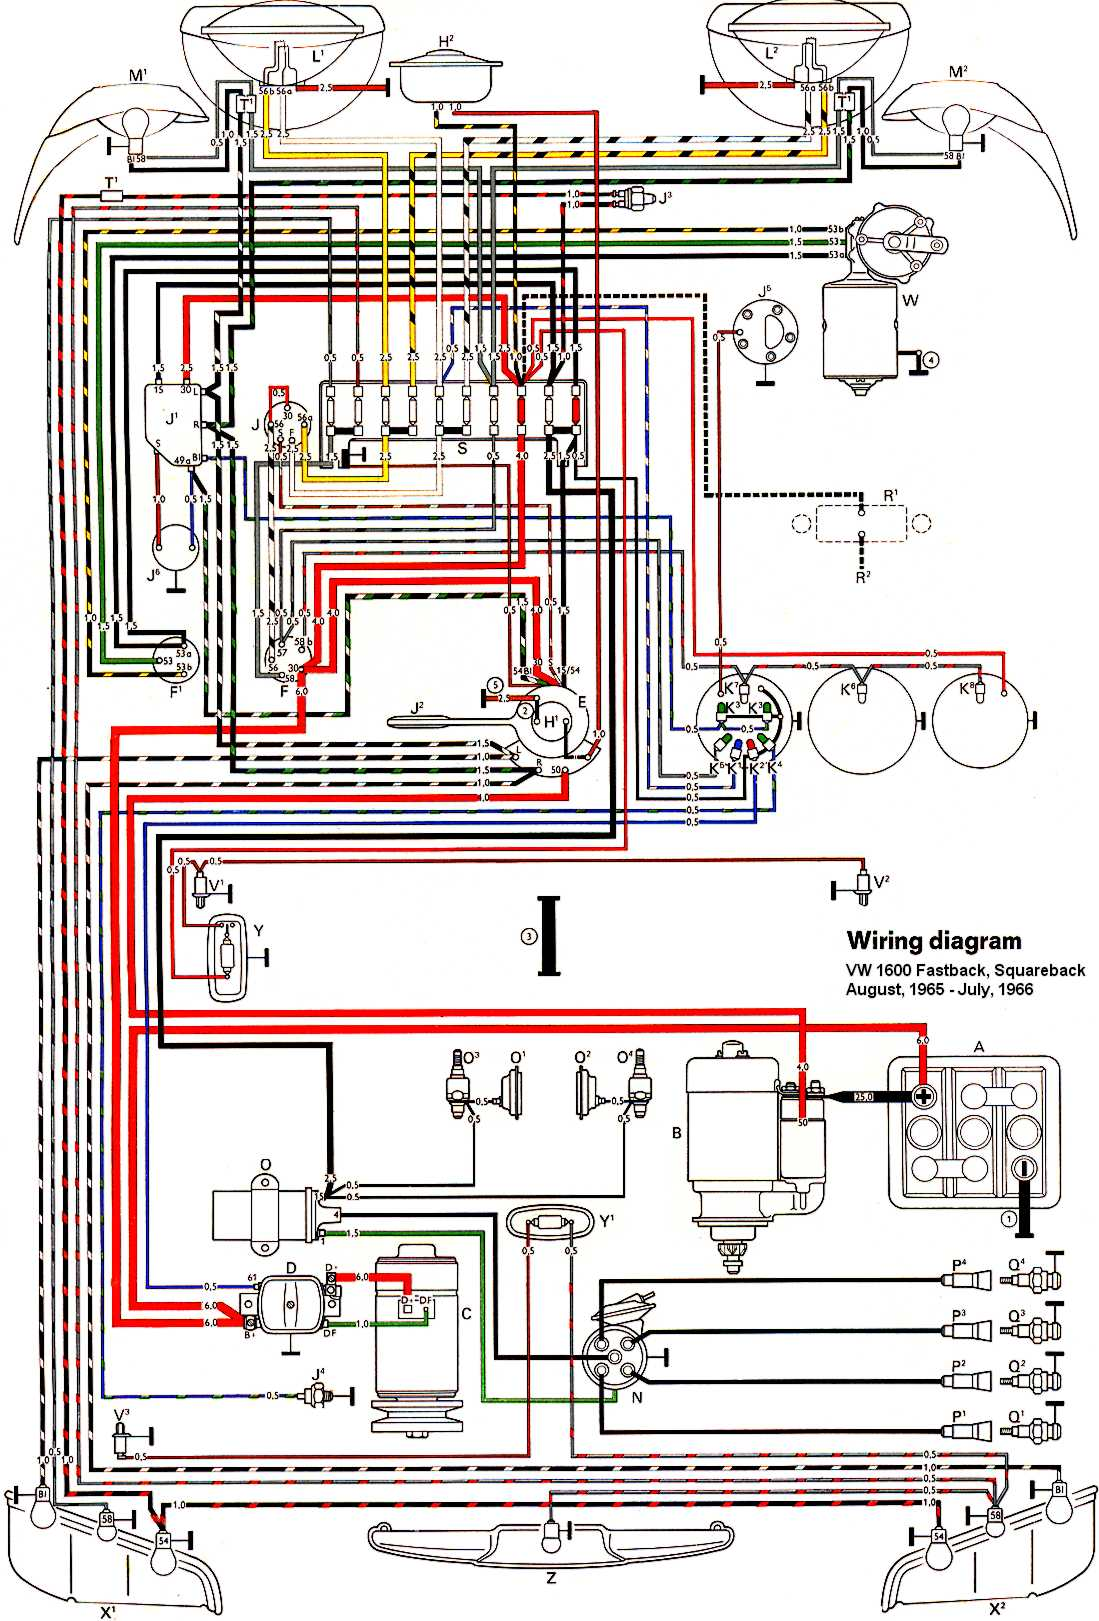 hight resolution of thesamba com type 3 wiring diagrams trailer wiring diagram type 3 wiring diagram